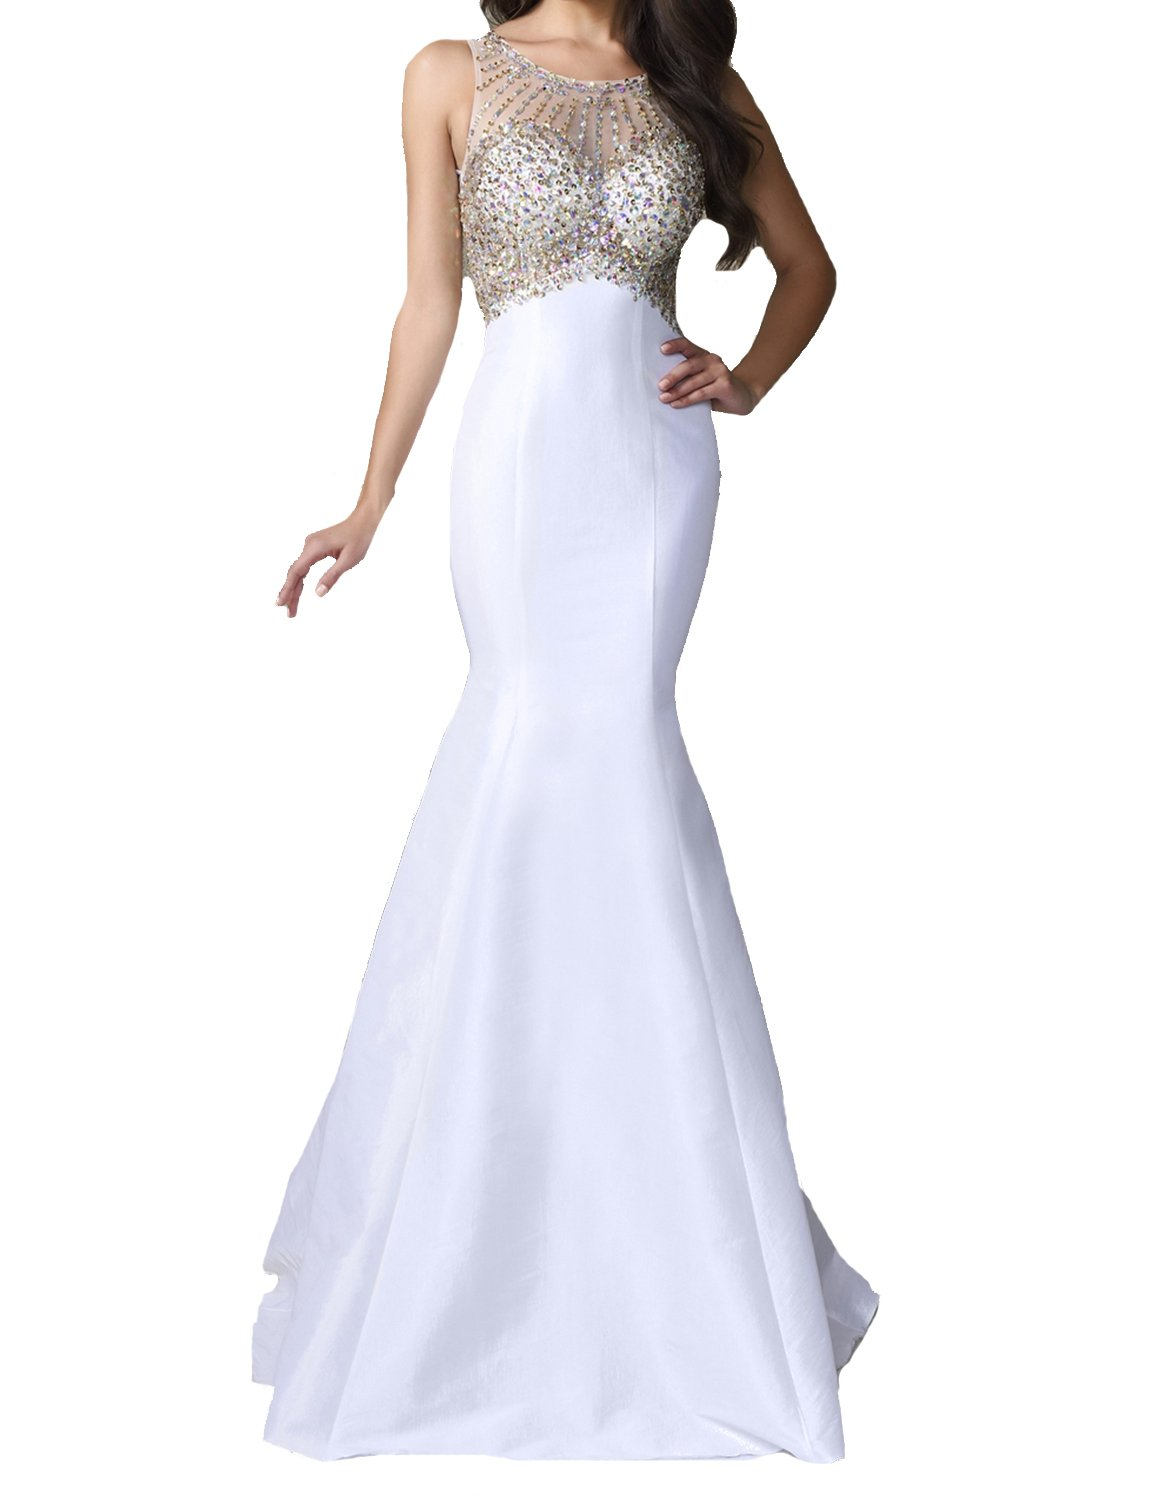 SeasonMall Womens Prom Dresses Long 2016 Scoop Sleeveless Mermaid Satin With Beading Sweep Train Size 0 White by SeasonMall